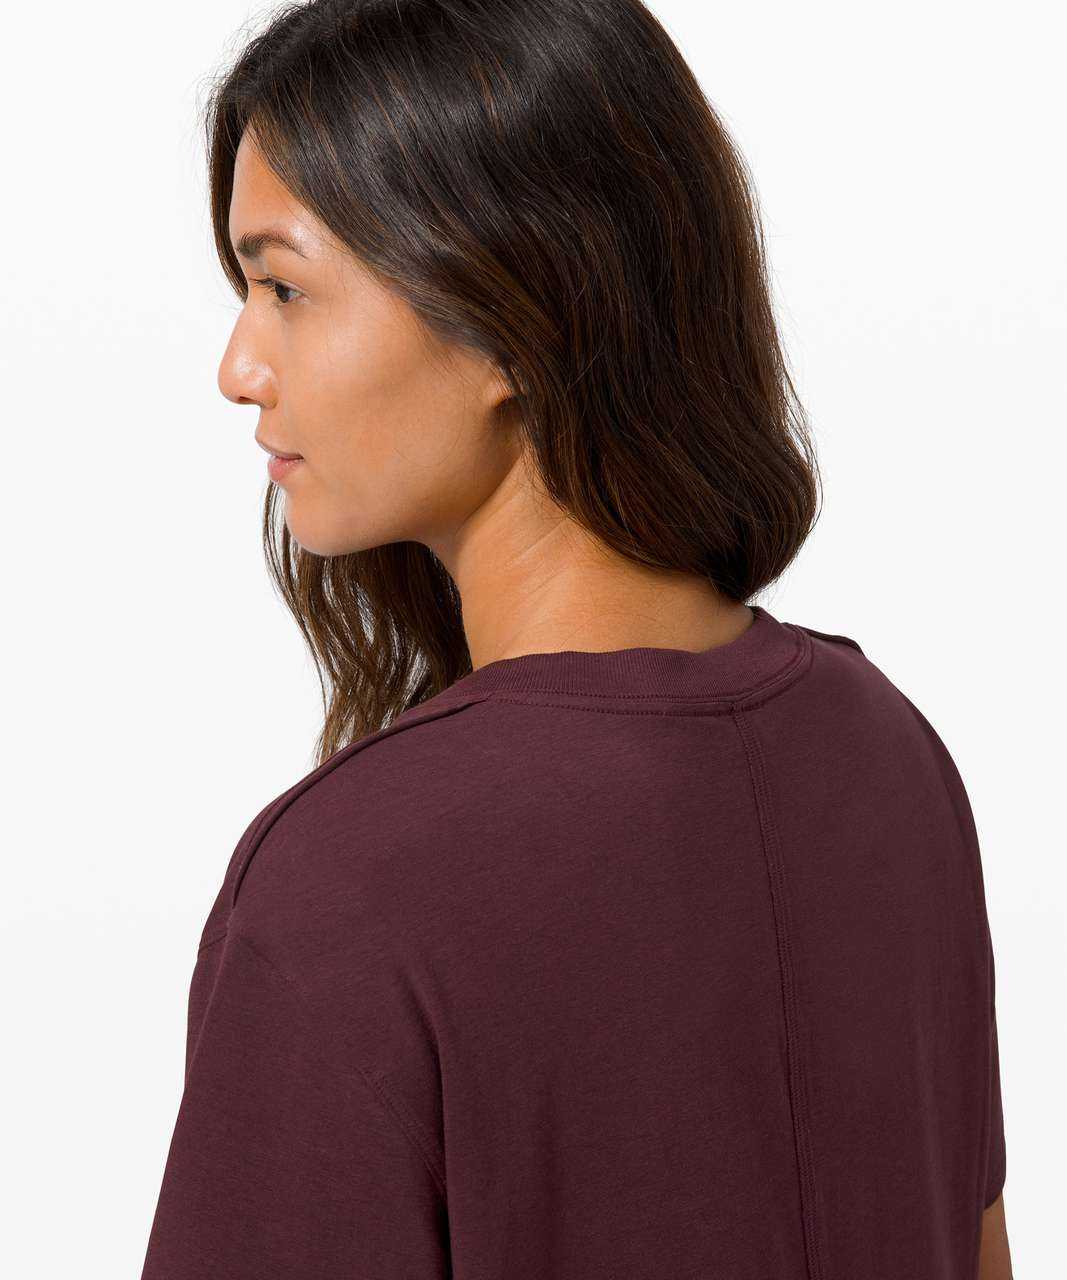 Lululemon All Yours Boyfriend Tee - Cassis